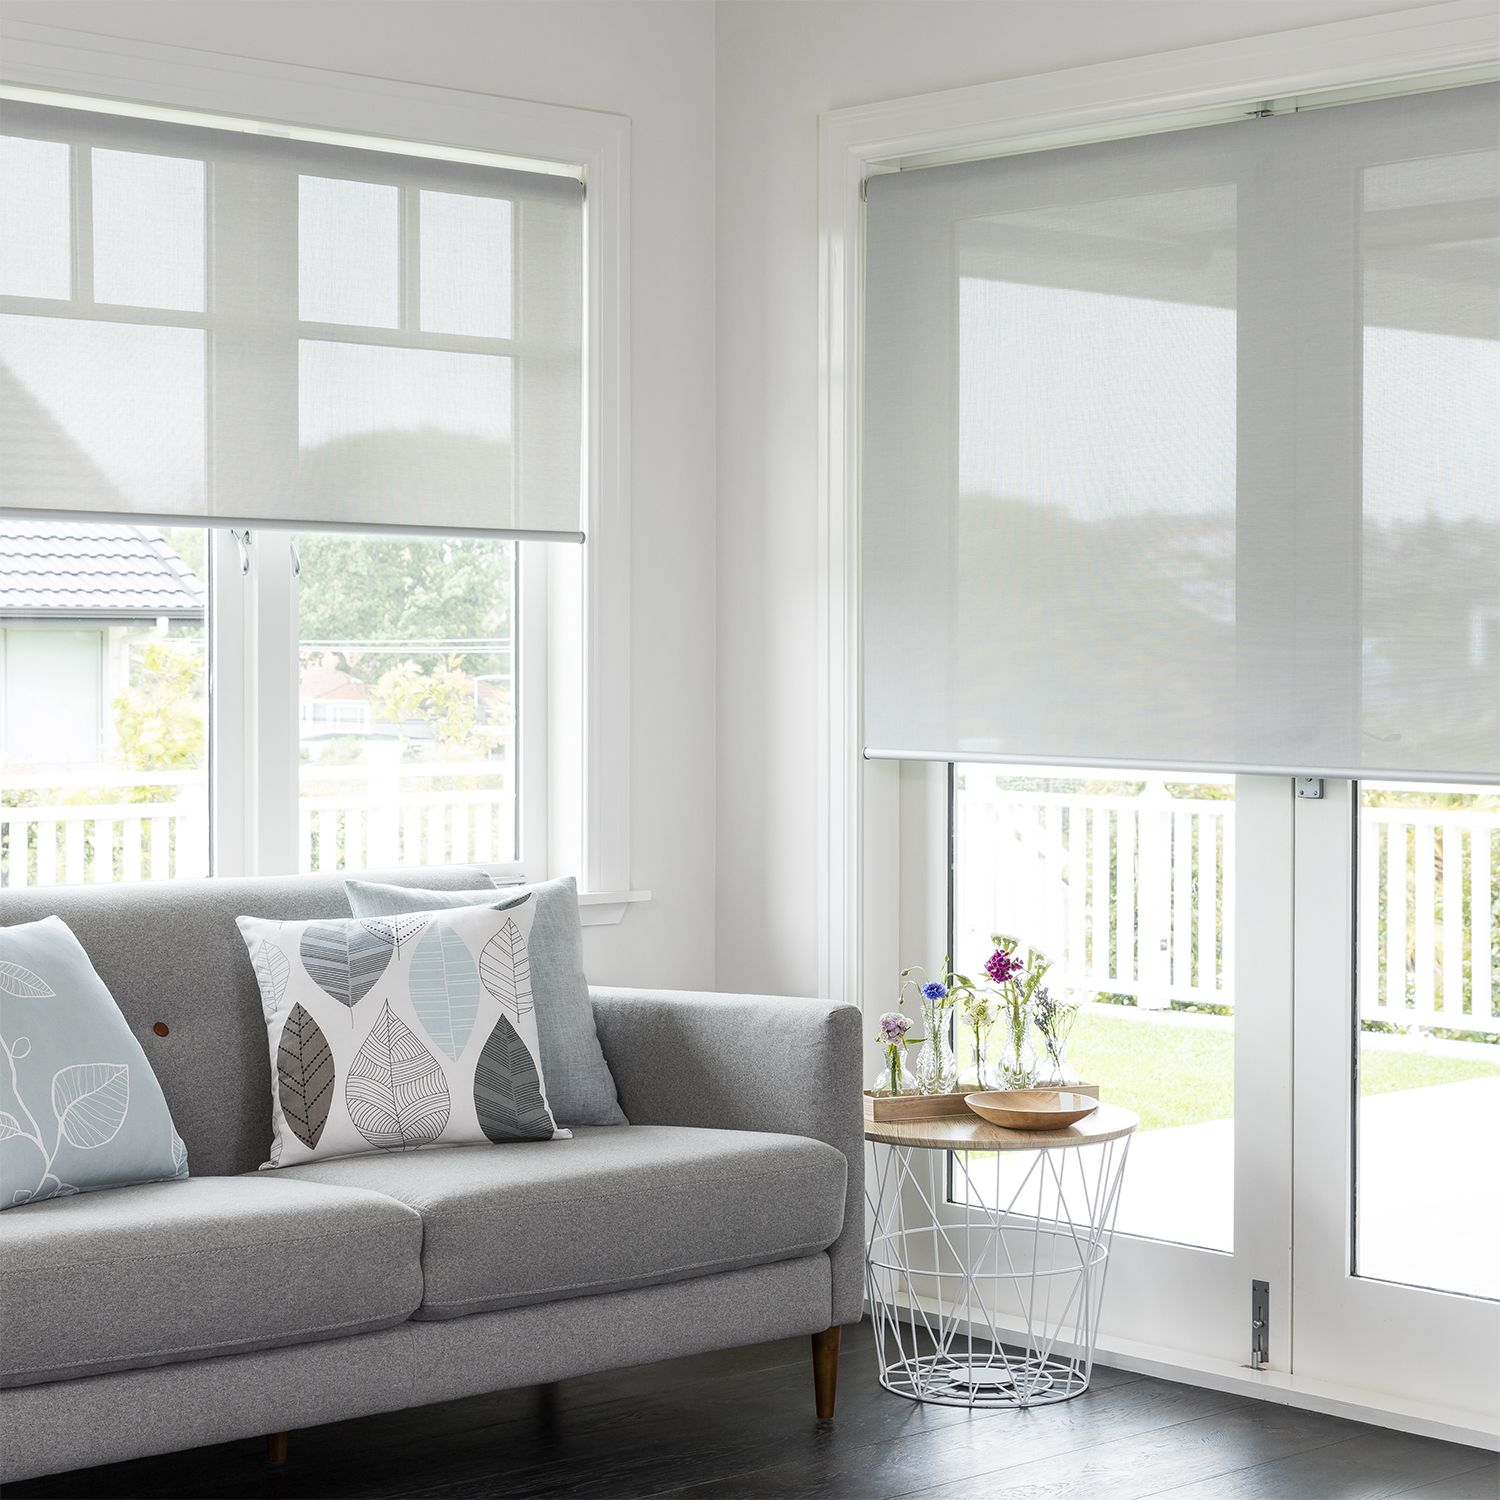 Madison White Grey Readymade Sunscreen Roller Blind Curtain Studio Buy Curtains Online Blinds Roller Blinds Modern Roller Blinds